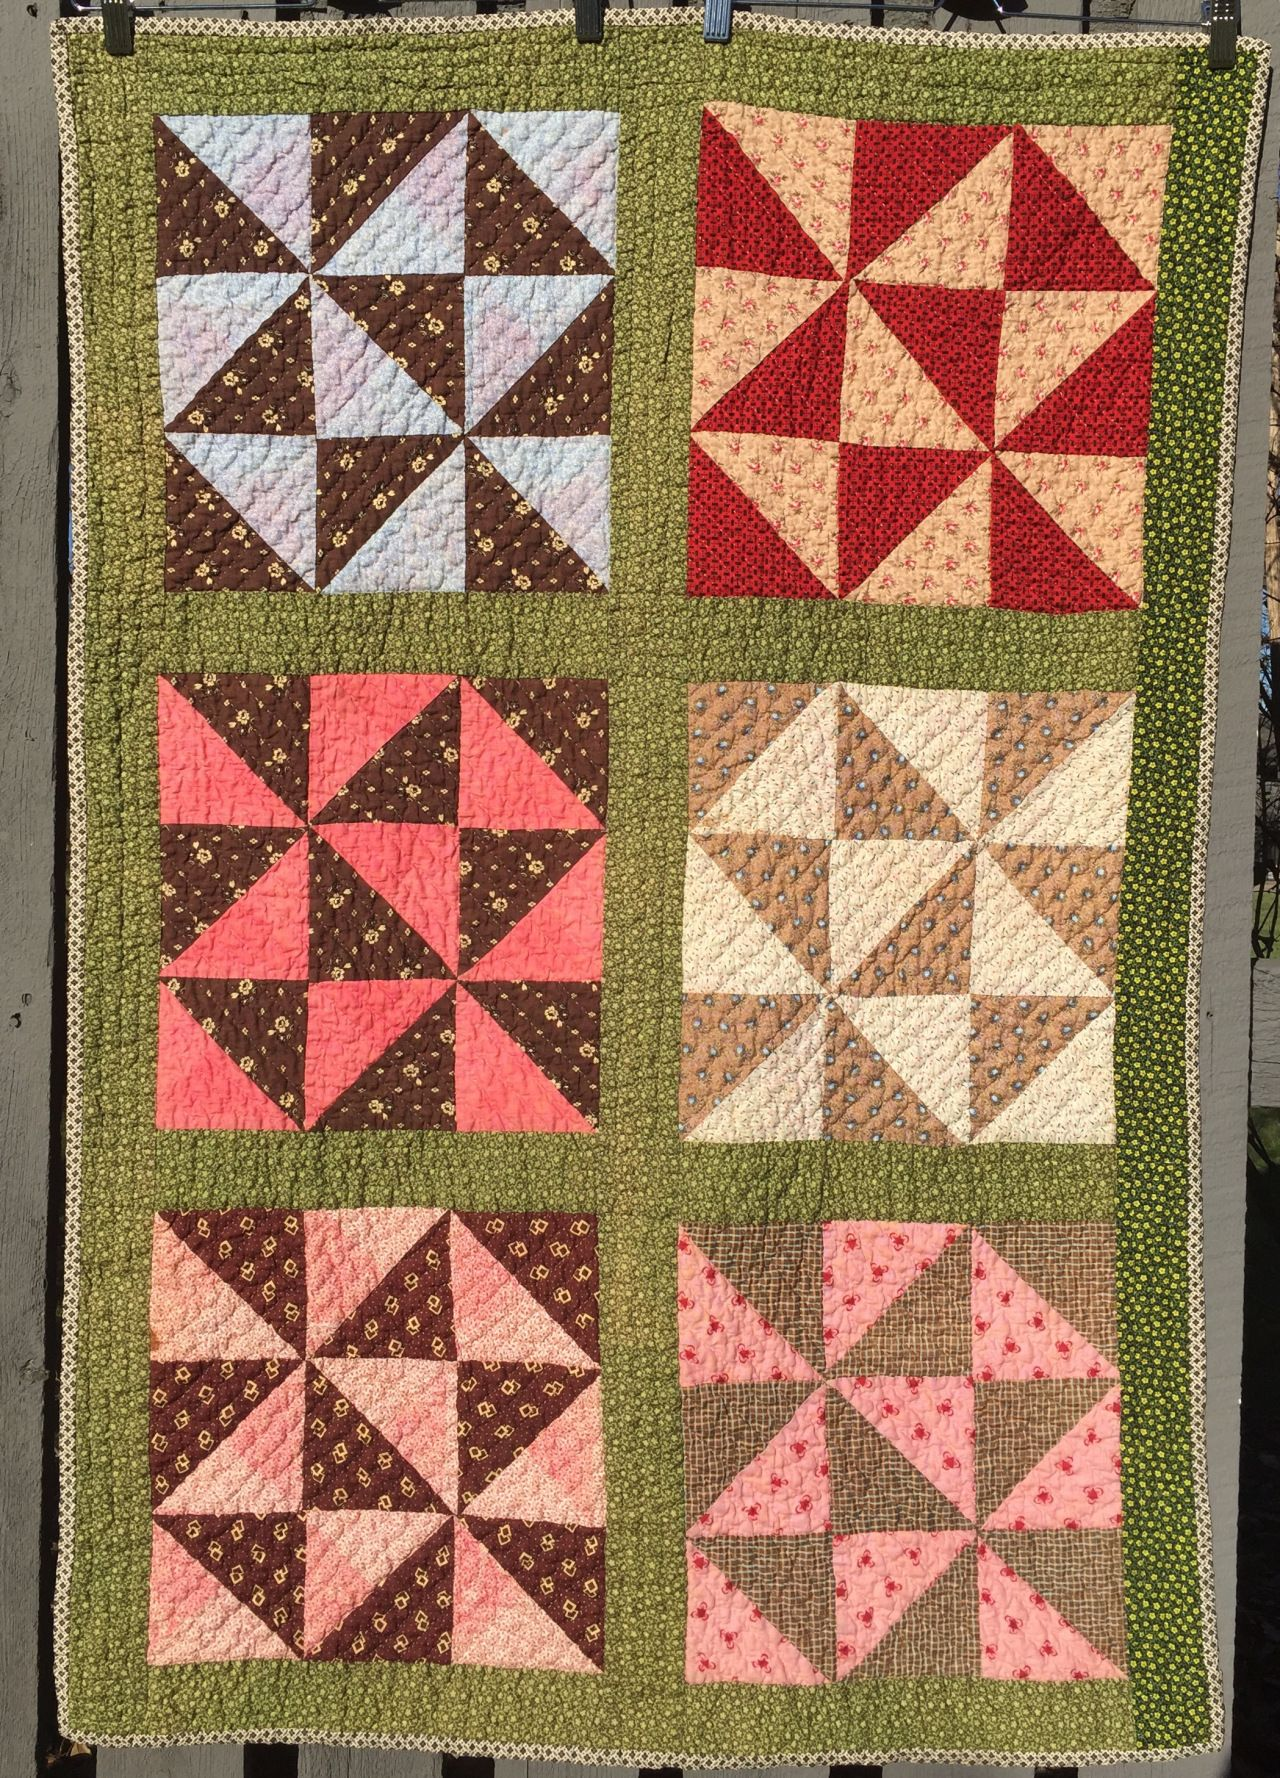 I Finished Hand Quilting This Vintage Broken Dishes Crib Quilt Top This Is The Sixth Top I Have Hand Quilted This Vintage Quilt Top Doll Quilt Vintage Quilts